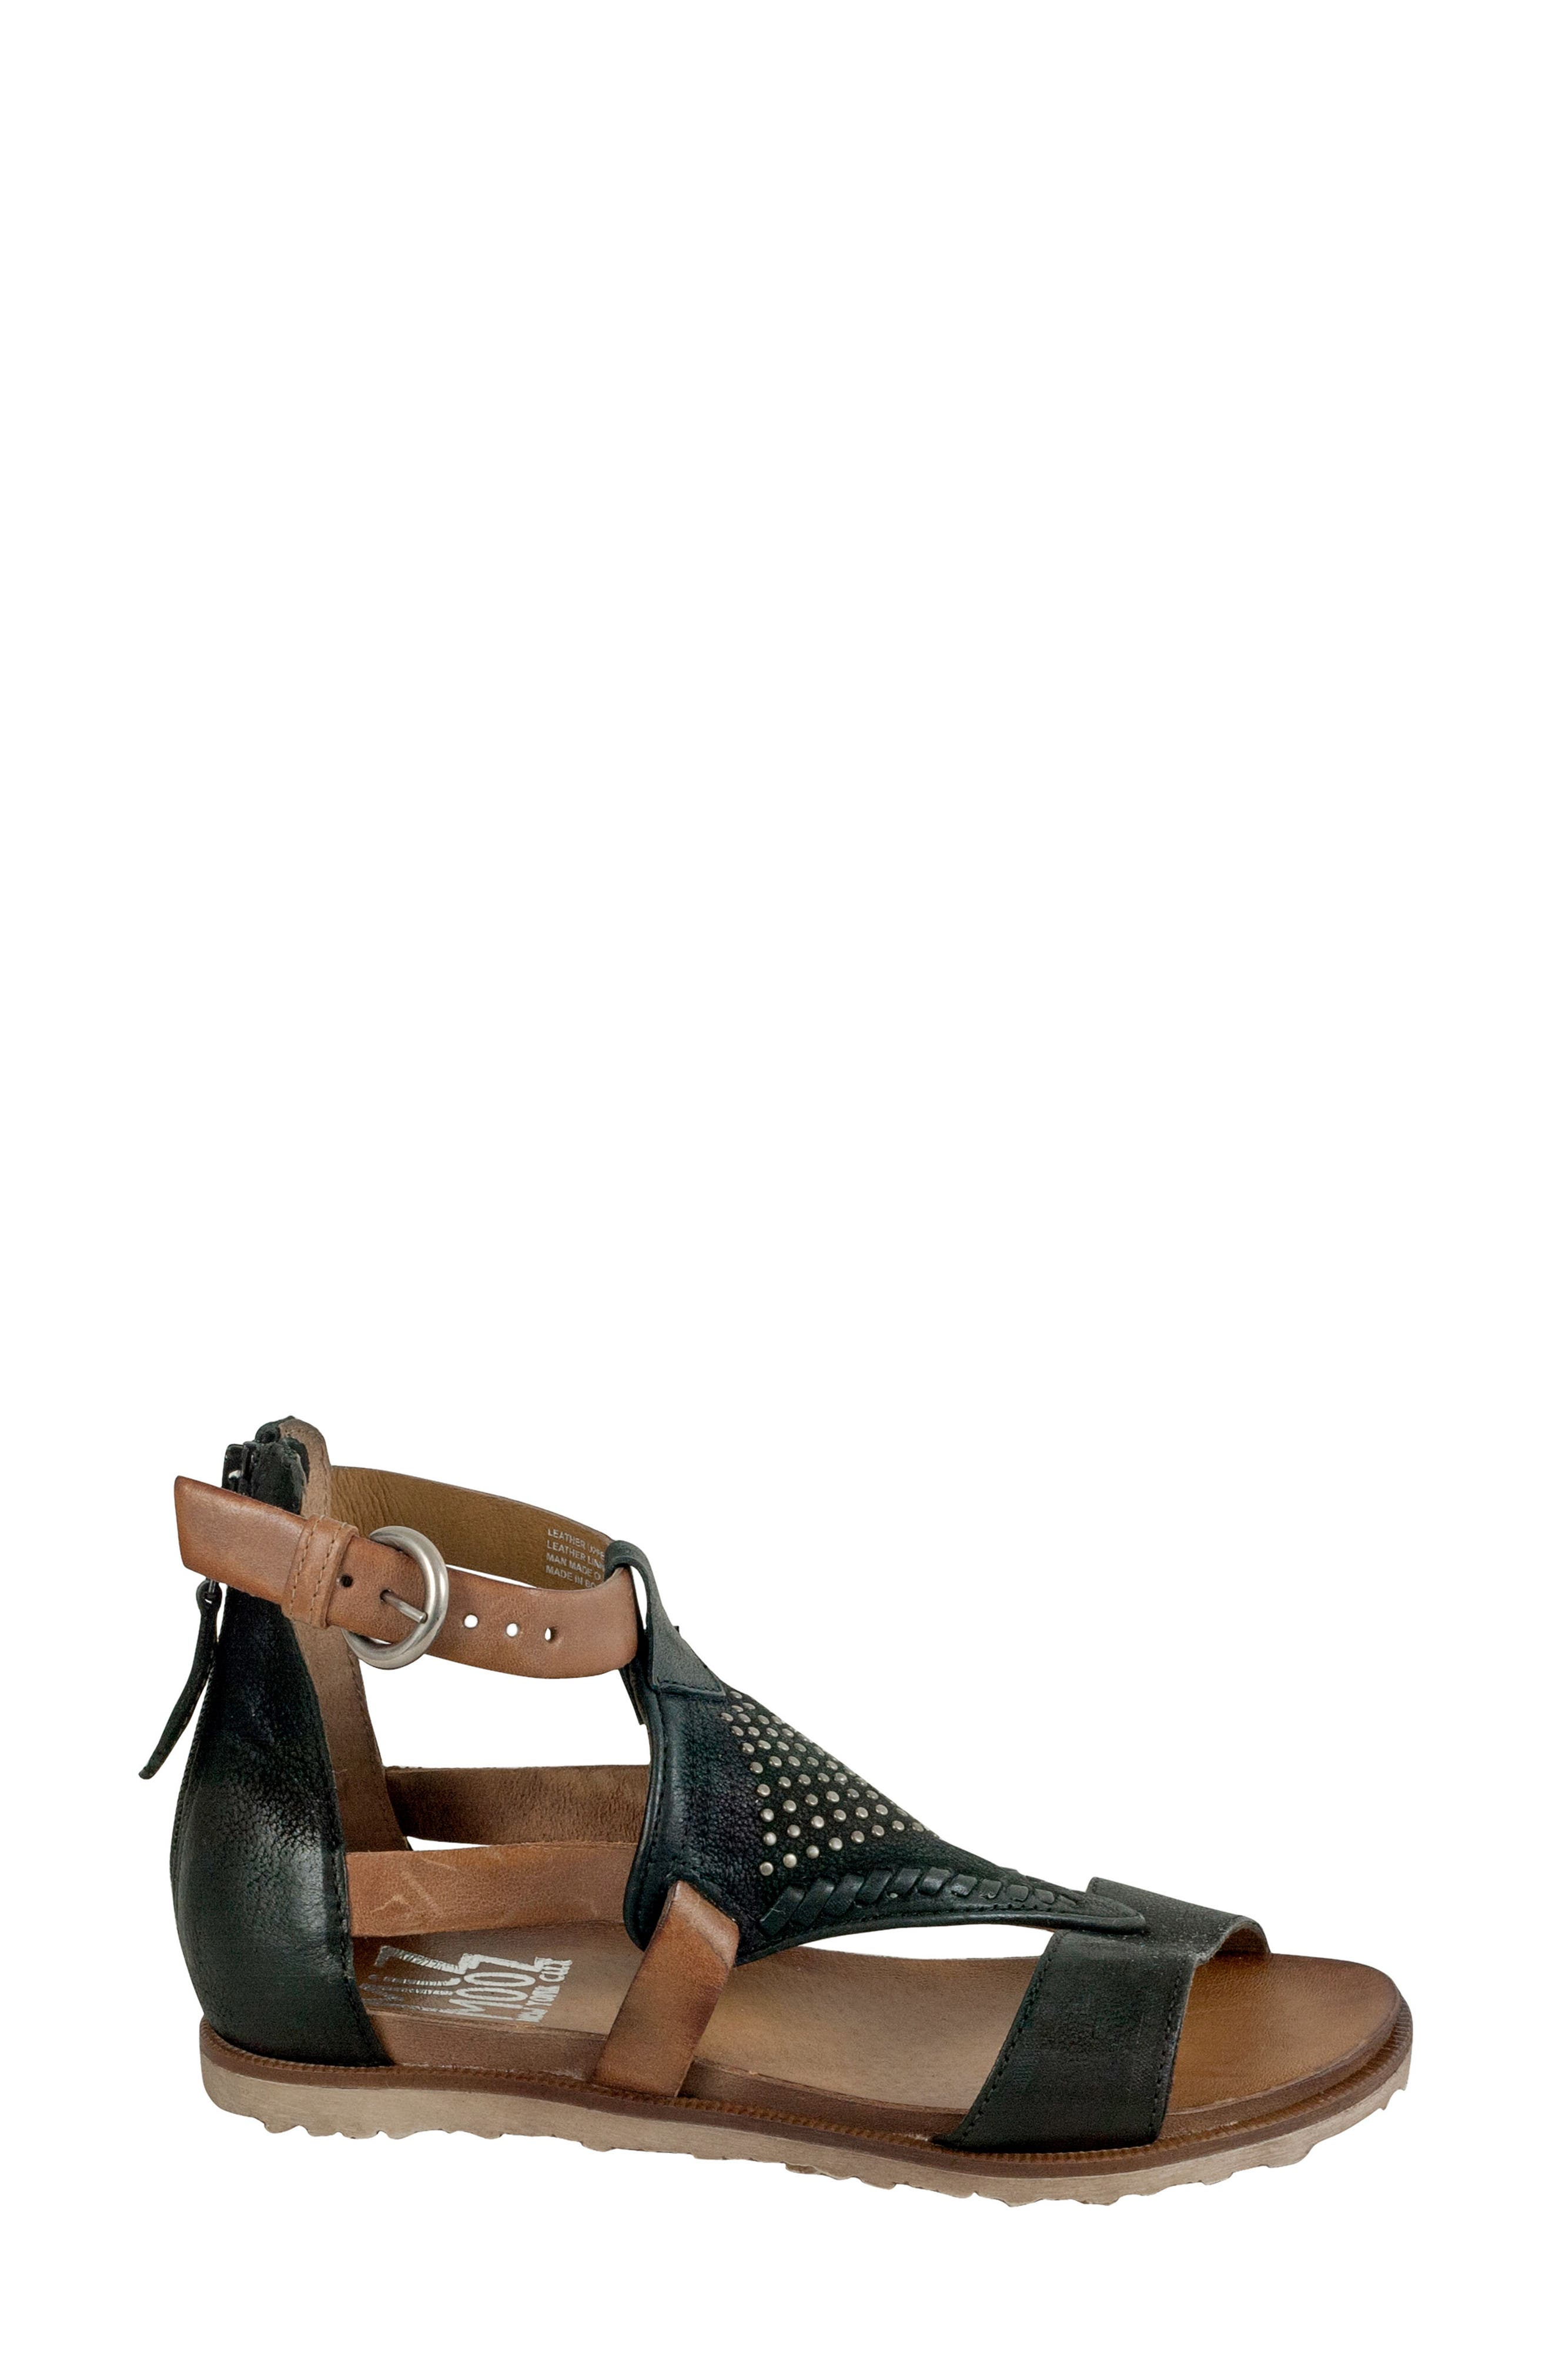 Tessa Studded Diamond Sandal,                             Alternate thumbnail 3, color,                             Black Leather